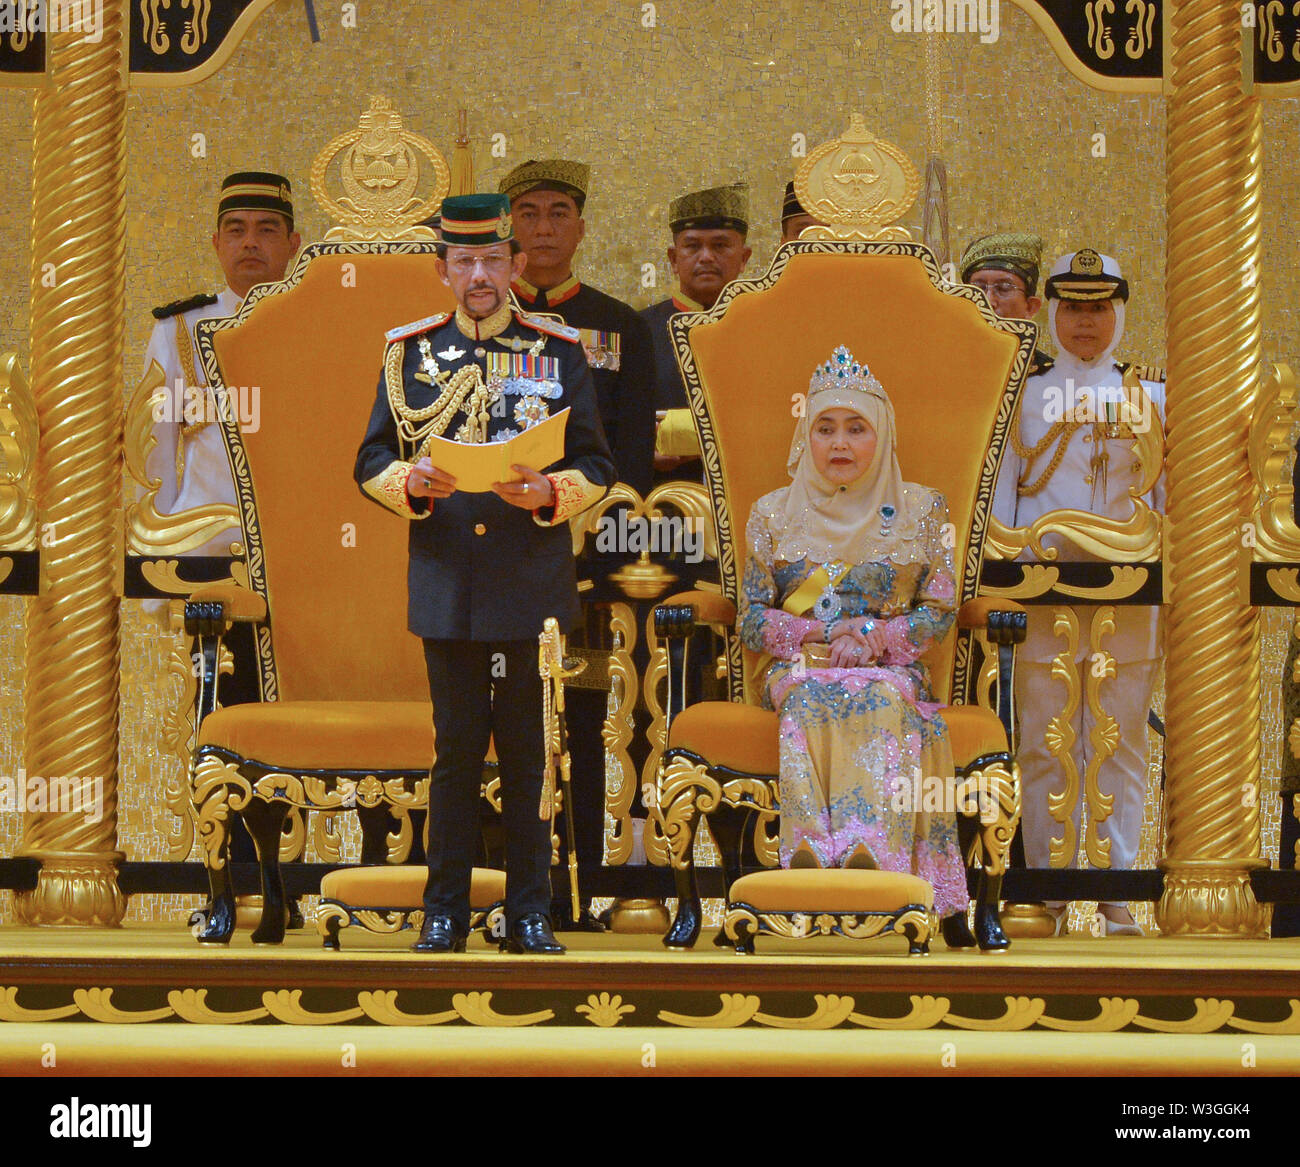 Bandar Seri Begawan, Brunei. 15th July, 2019. Brunei's Sultan Haji Hassanal Bolkiah (L, front) delivers a speech during his birthday celebration at Istana Nurul Iman, Brunei's royal palace, in Bandar Seri Begawan, Brunei, July 15, 2019. Brunei celebrated the Sultan Haji Hassanal Bolkiah's 73rd birthday with various activities including a ceremonial parade and a grand state banquet on Monday. The Sultan birthday is a national event held annually, which usually lasted about a month. Credit: Jeffrey Wong/Xinhua/Alamy Live News - Stock Image